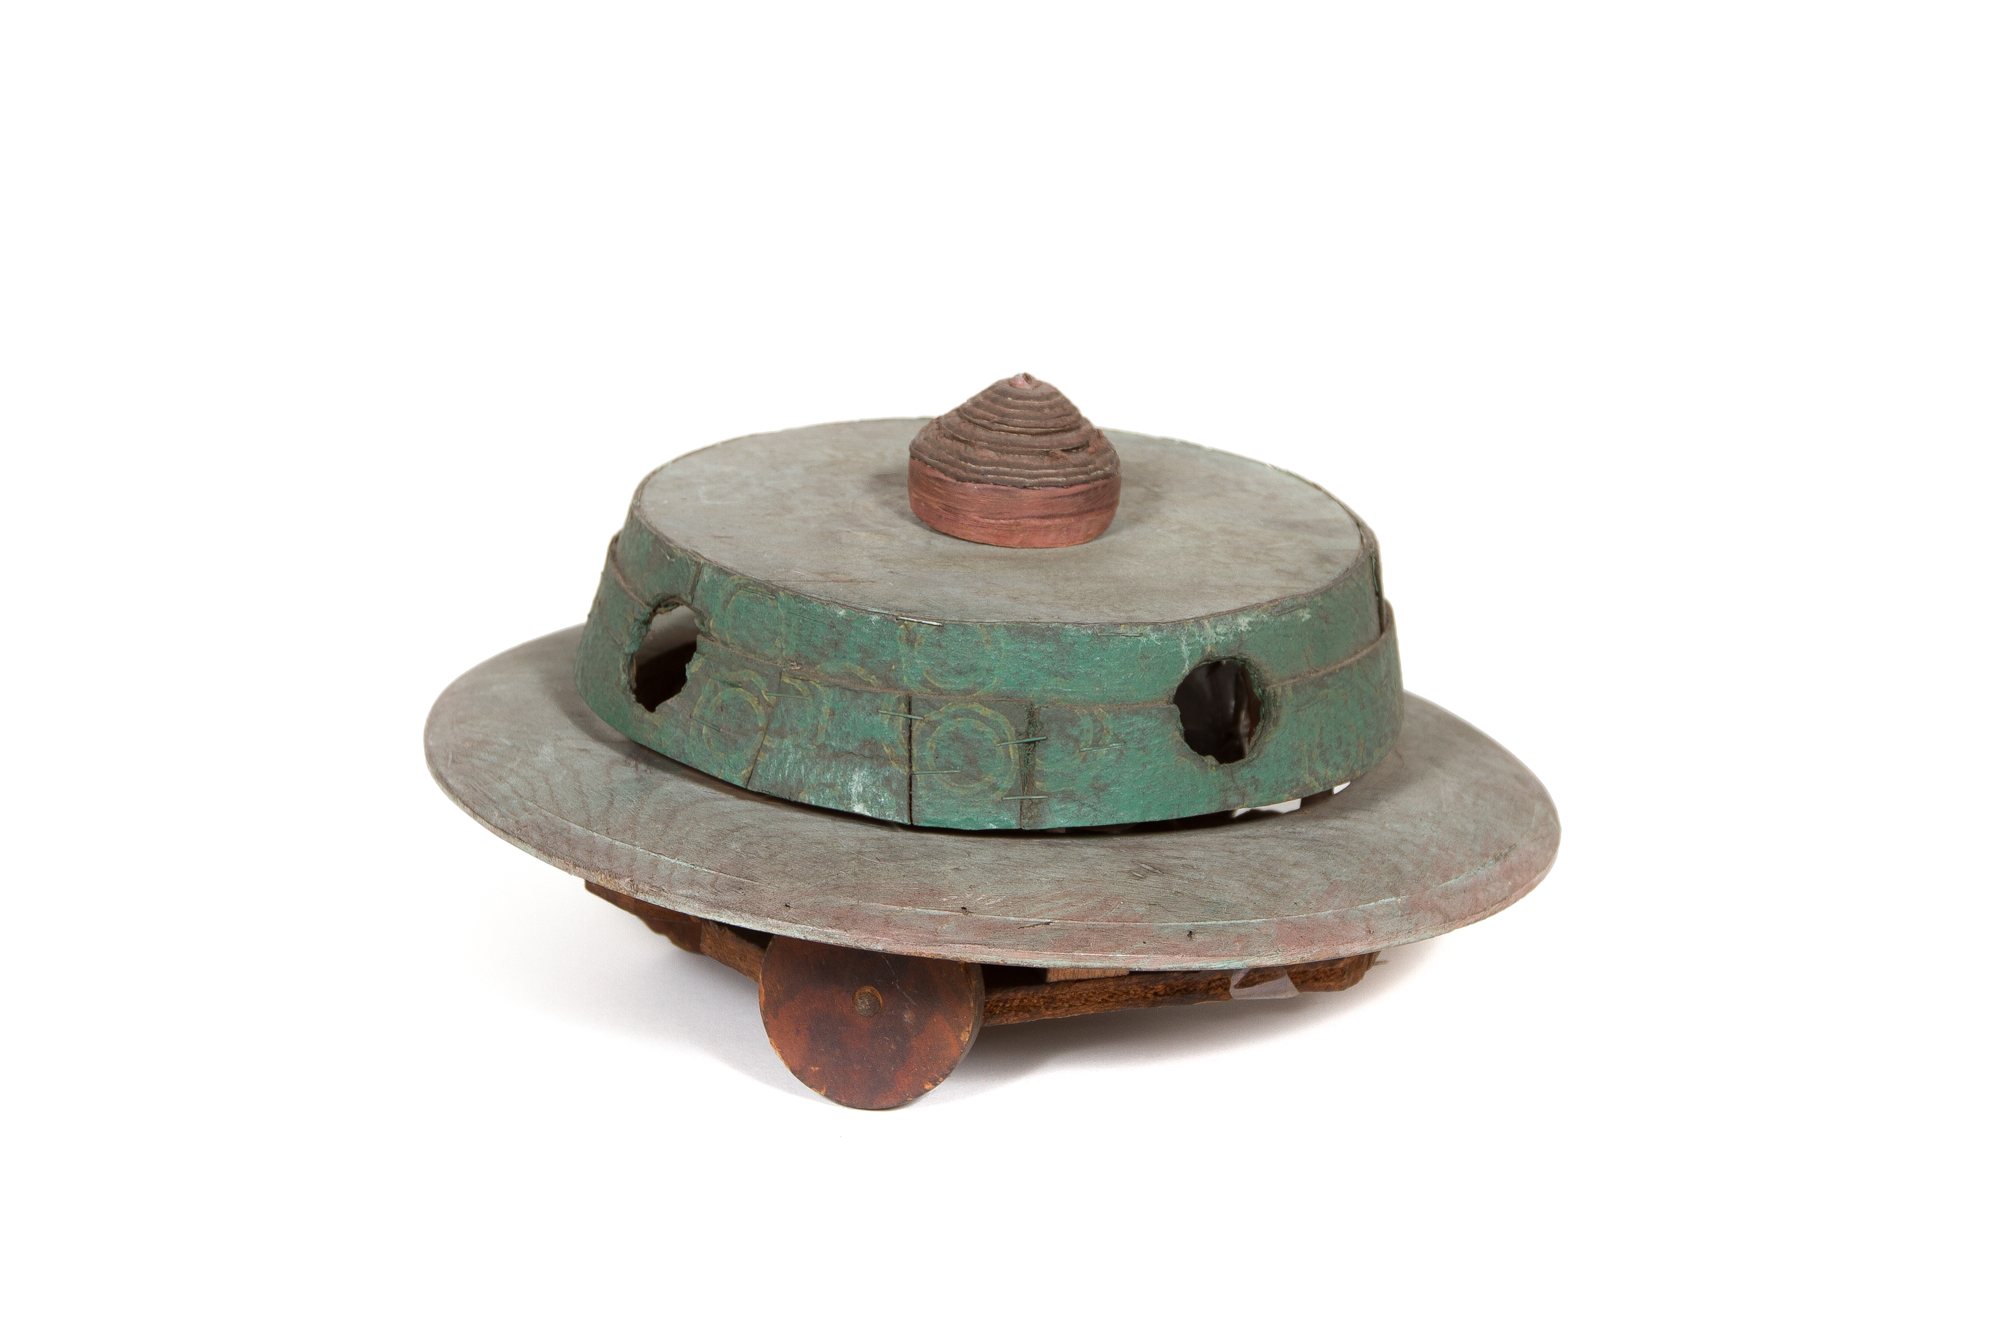 Folk Art Toy – Flying Saucer (circa 1945)